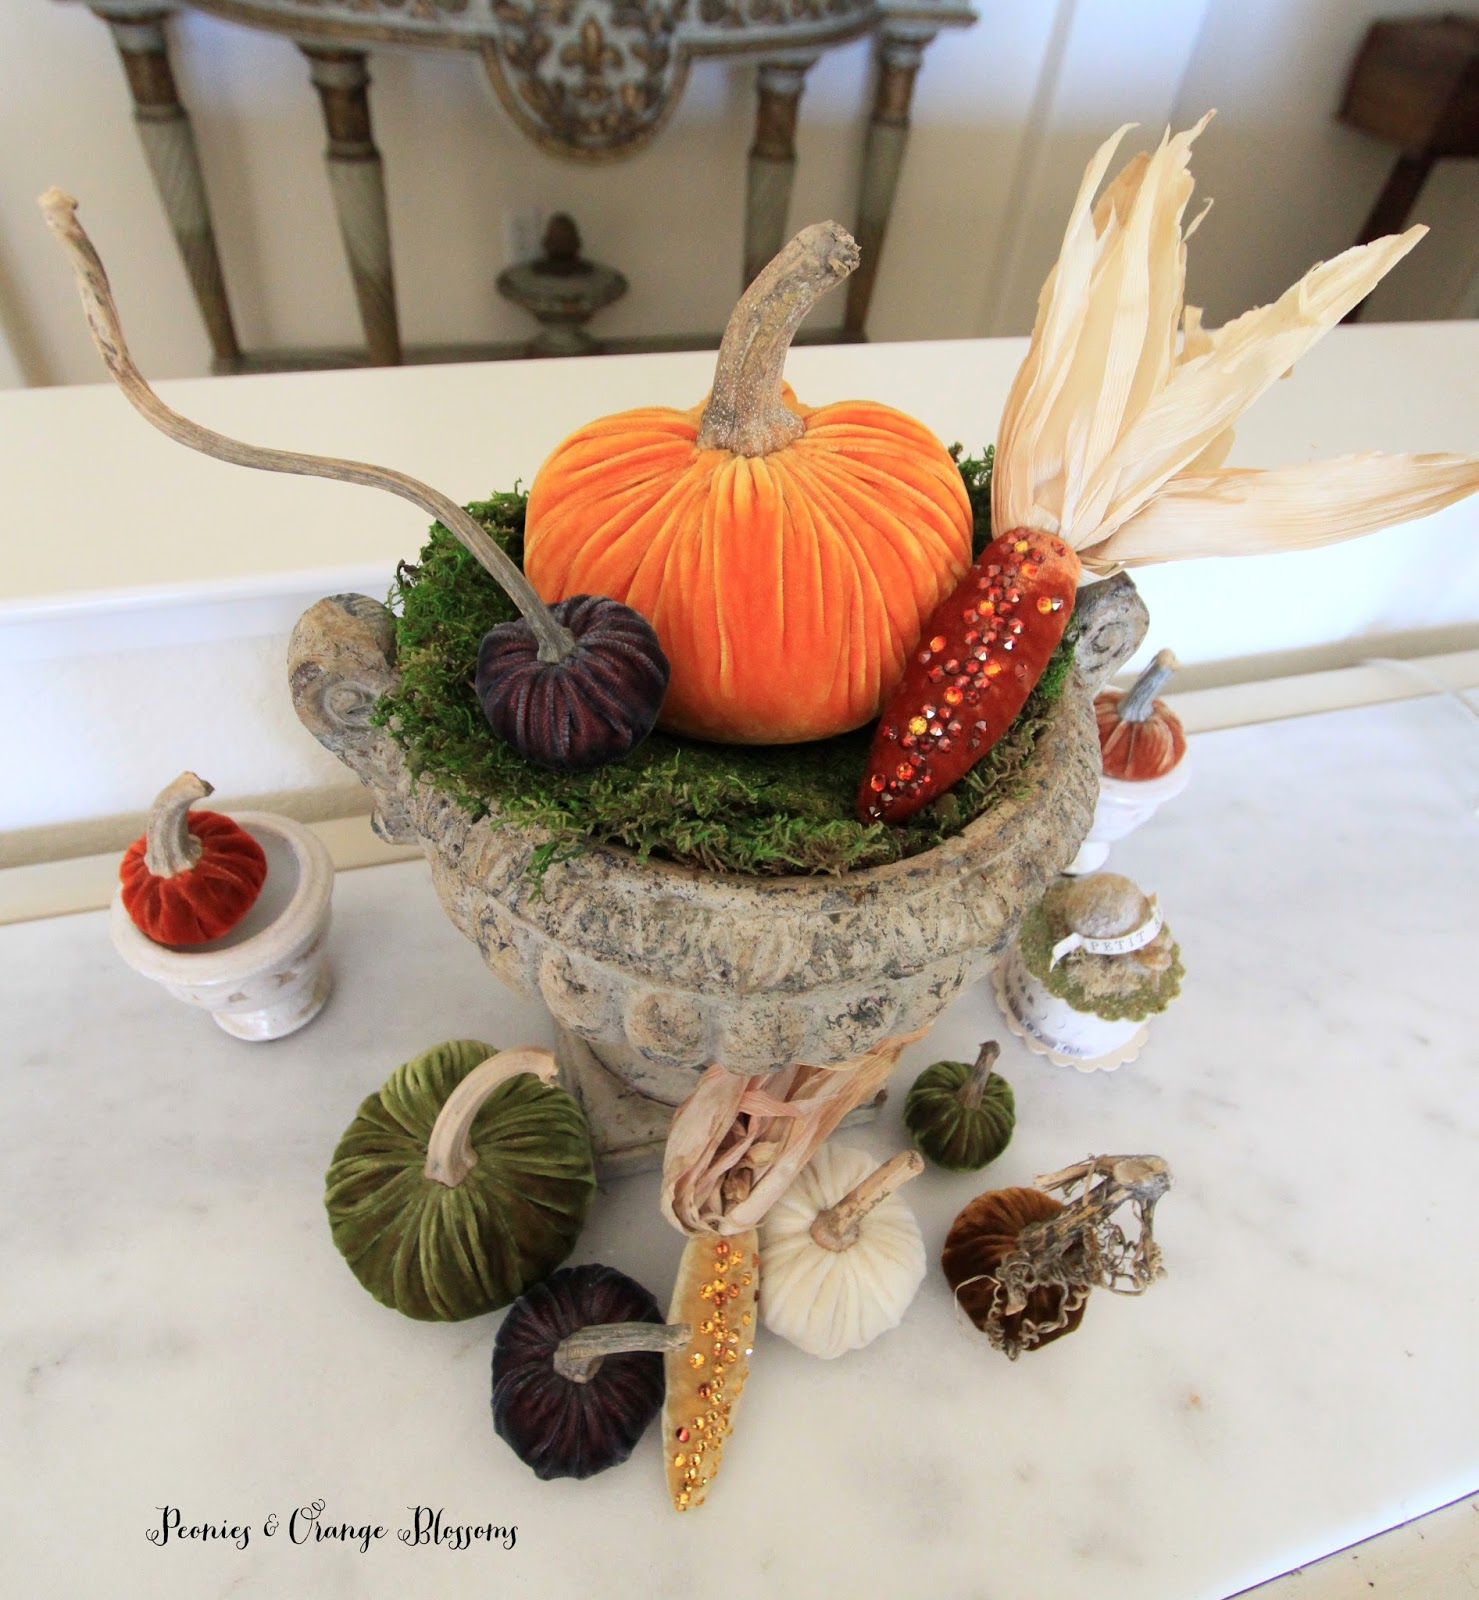 Decorate Shop Tigard Peonies And Orange Blossoms Decorating With Velvet Pumpkins And